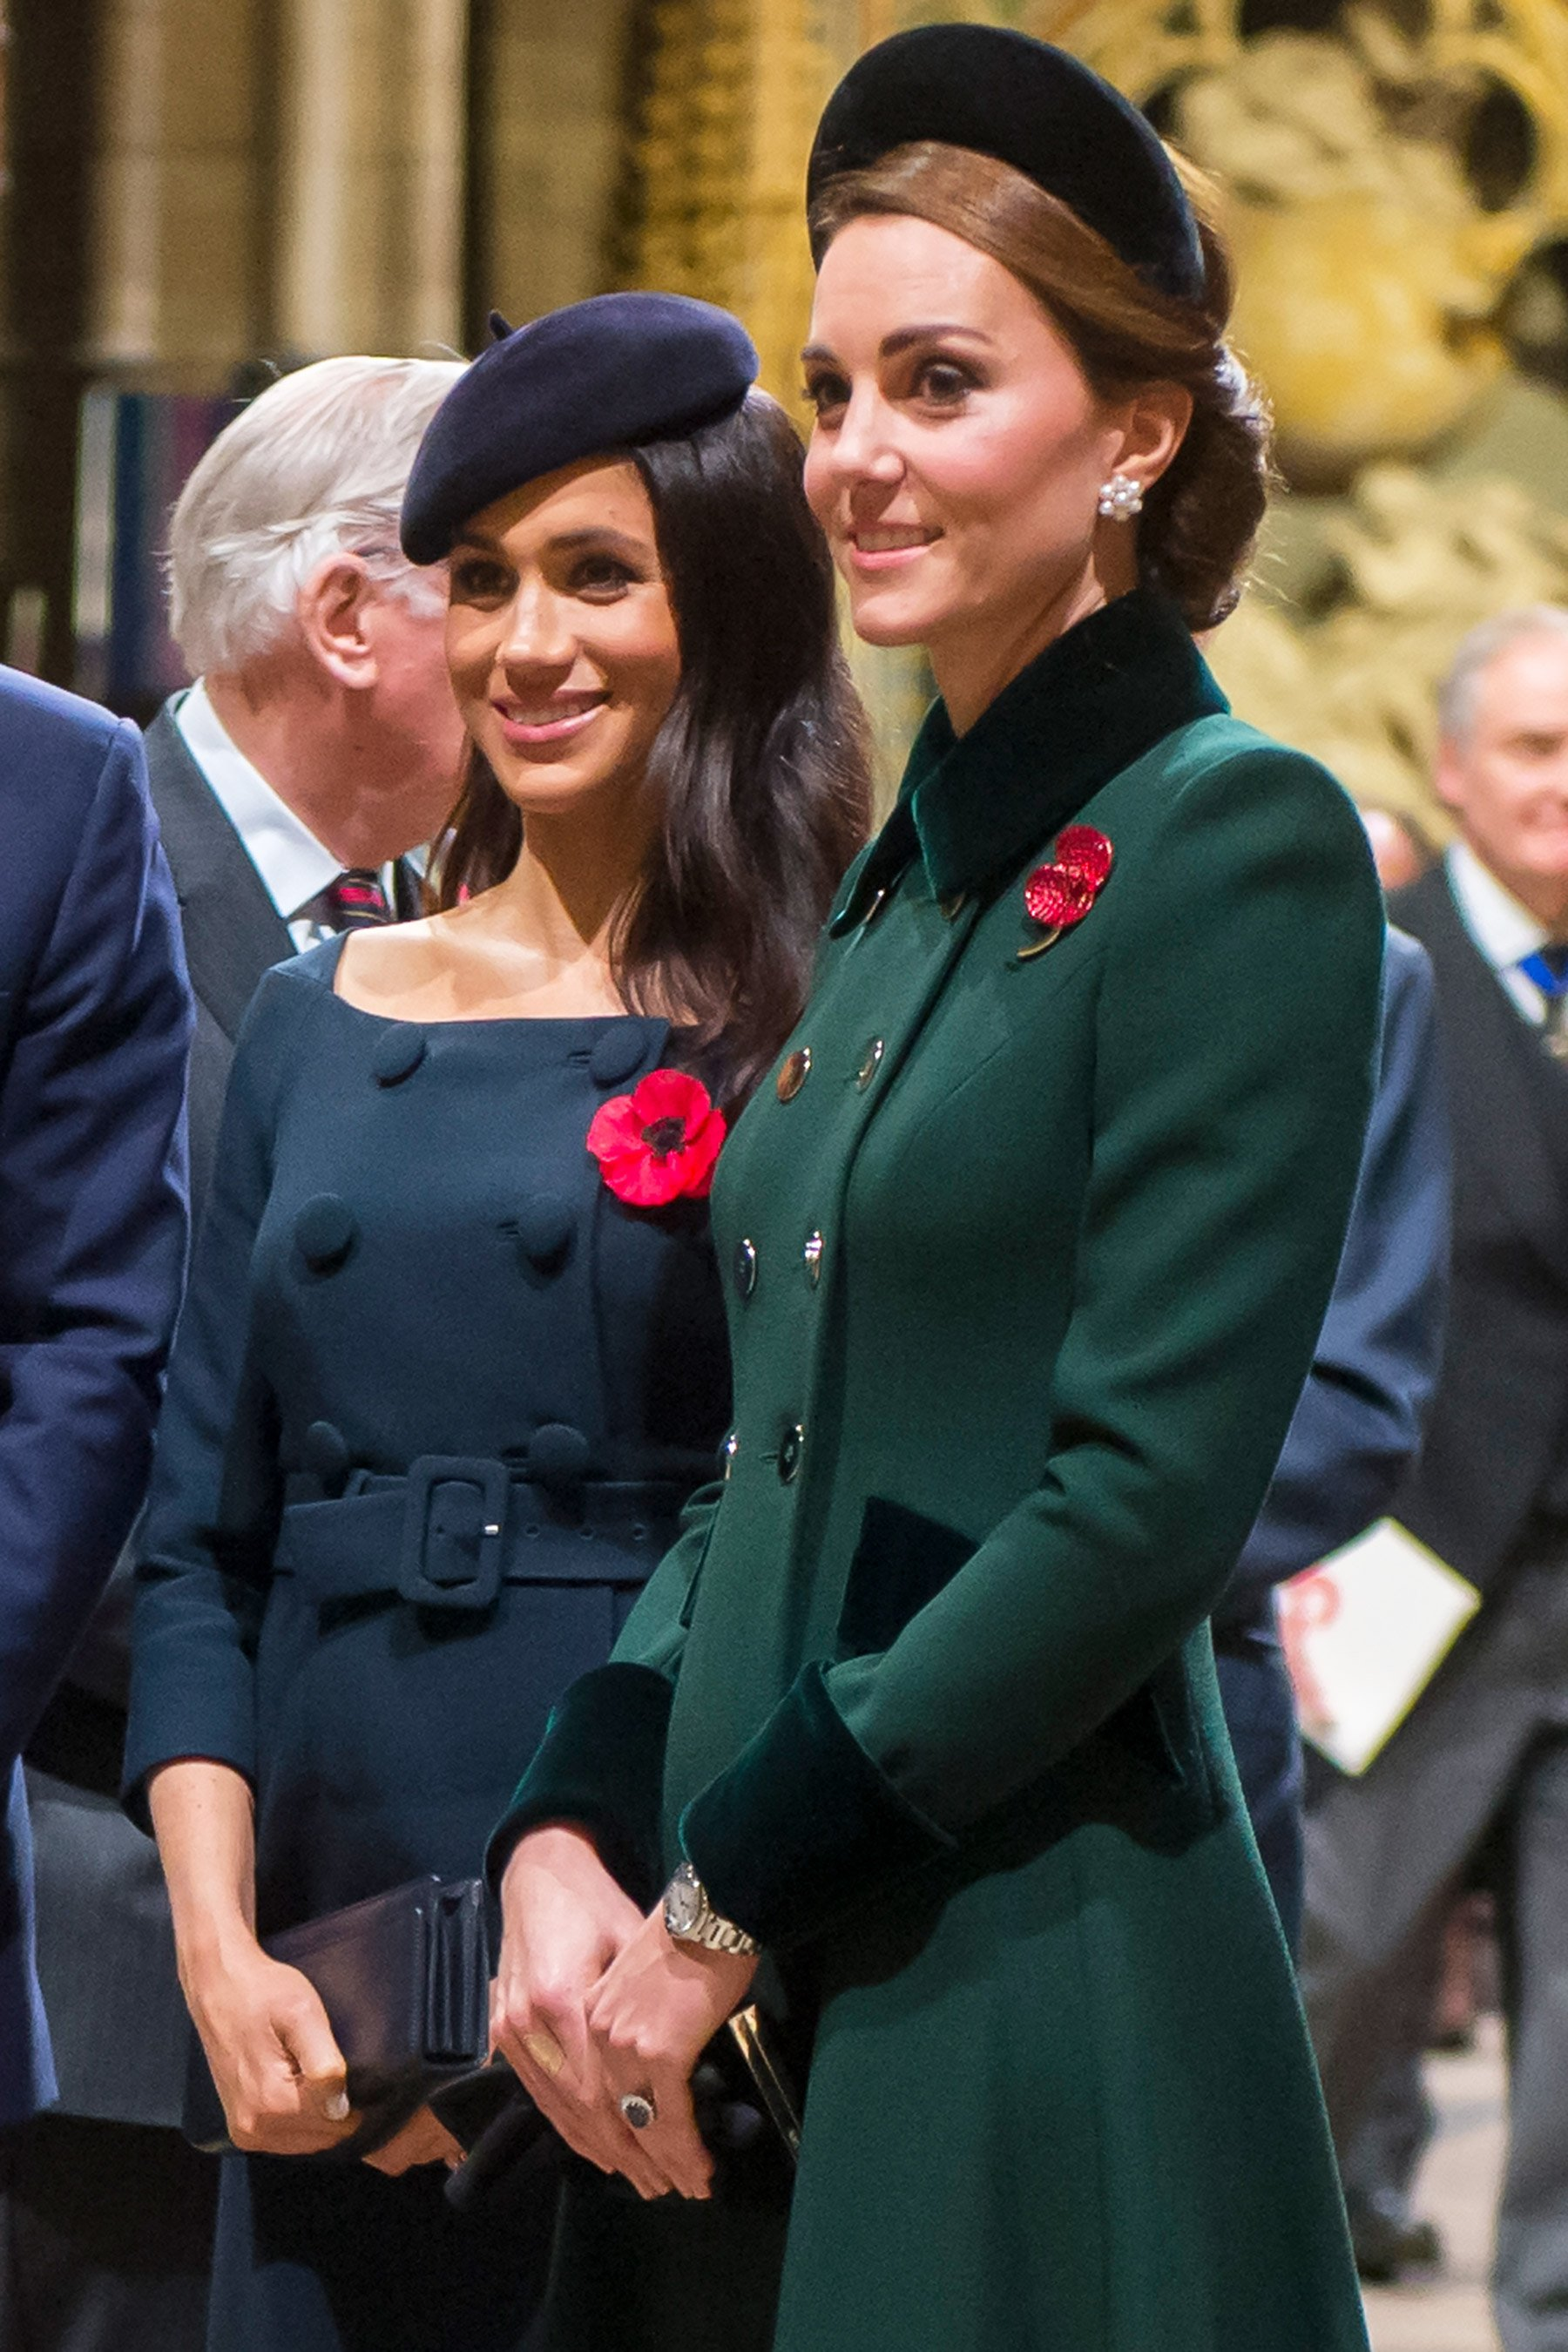 Kensington Palace Issues Rare Denial Over Kate Middleton and Meghan Markle Feud Rumors